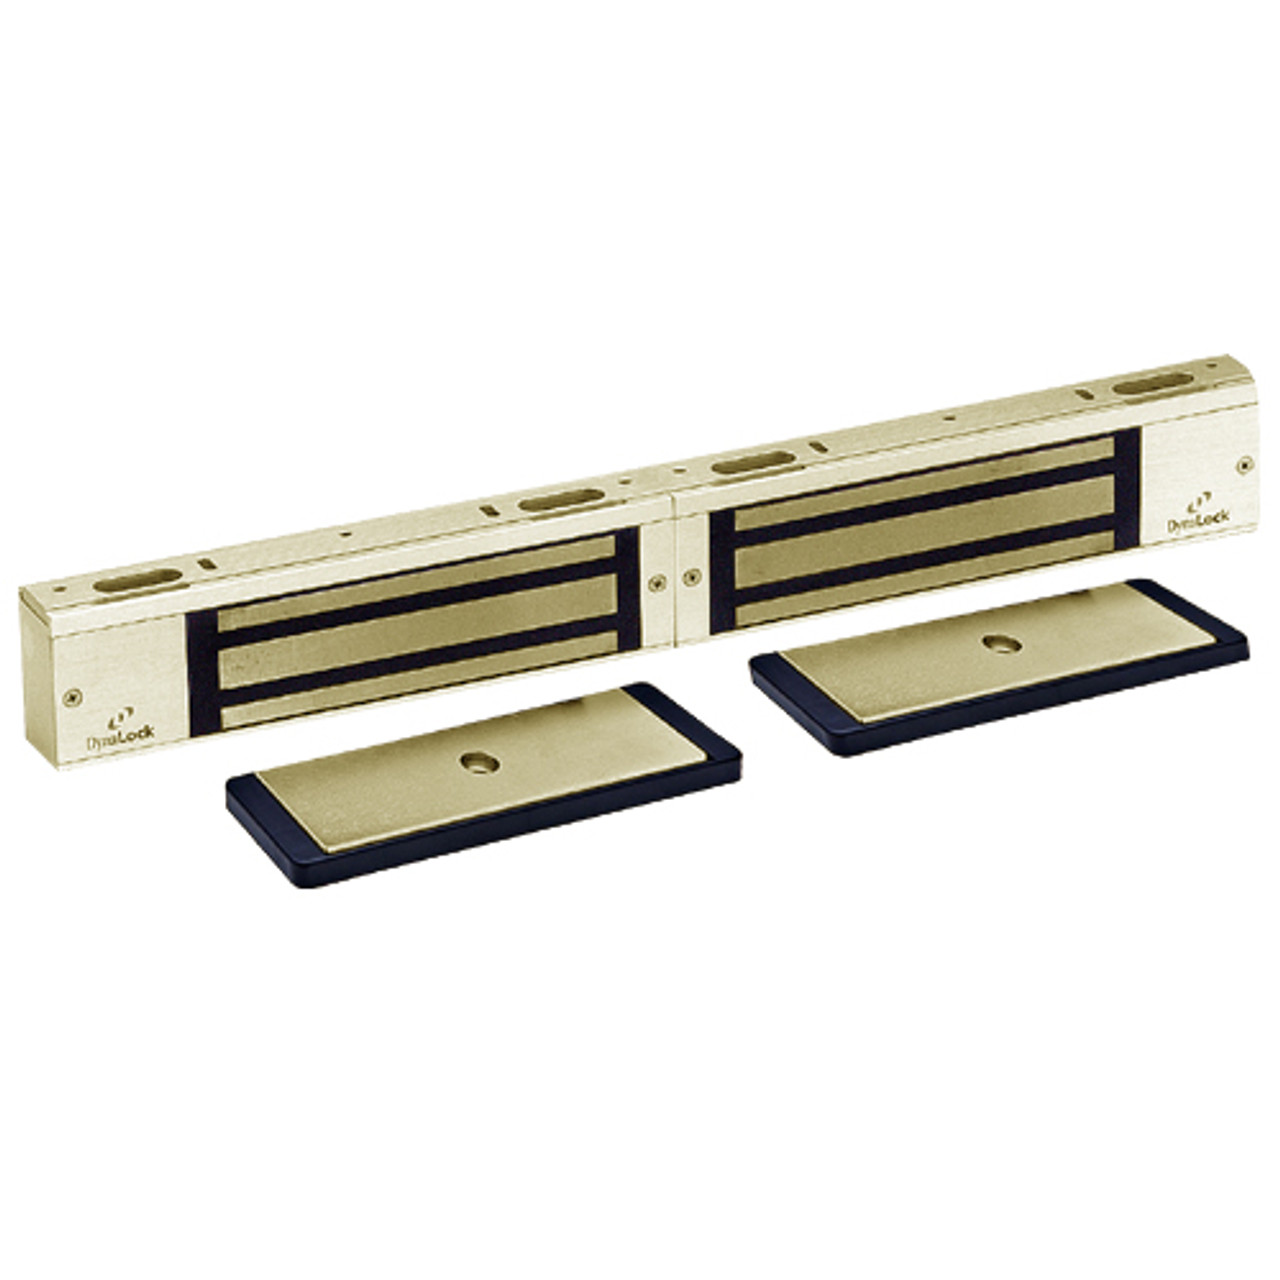 3002-US4-HSM2 DynaLock 3000 Series 1500 LBs Double Electromagnetic Lock for Outswing Door with HSM in Satin Brass